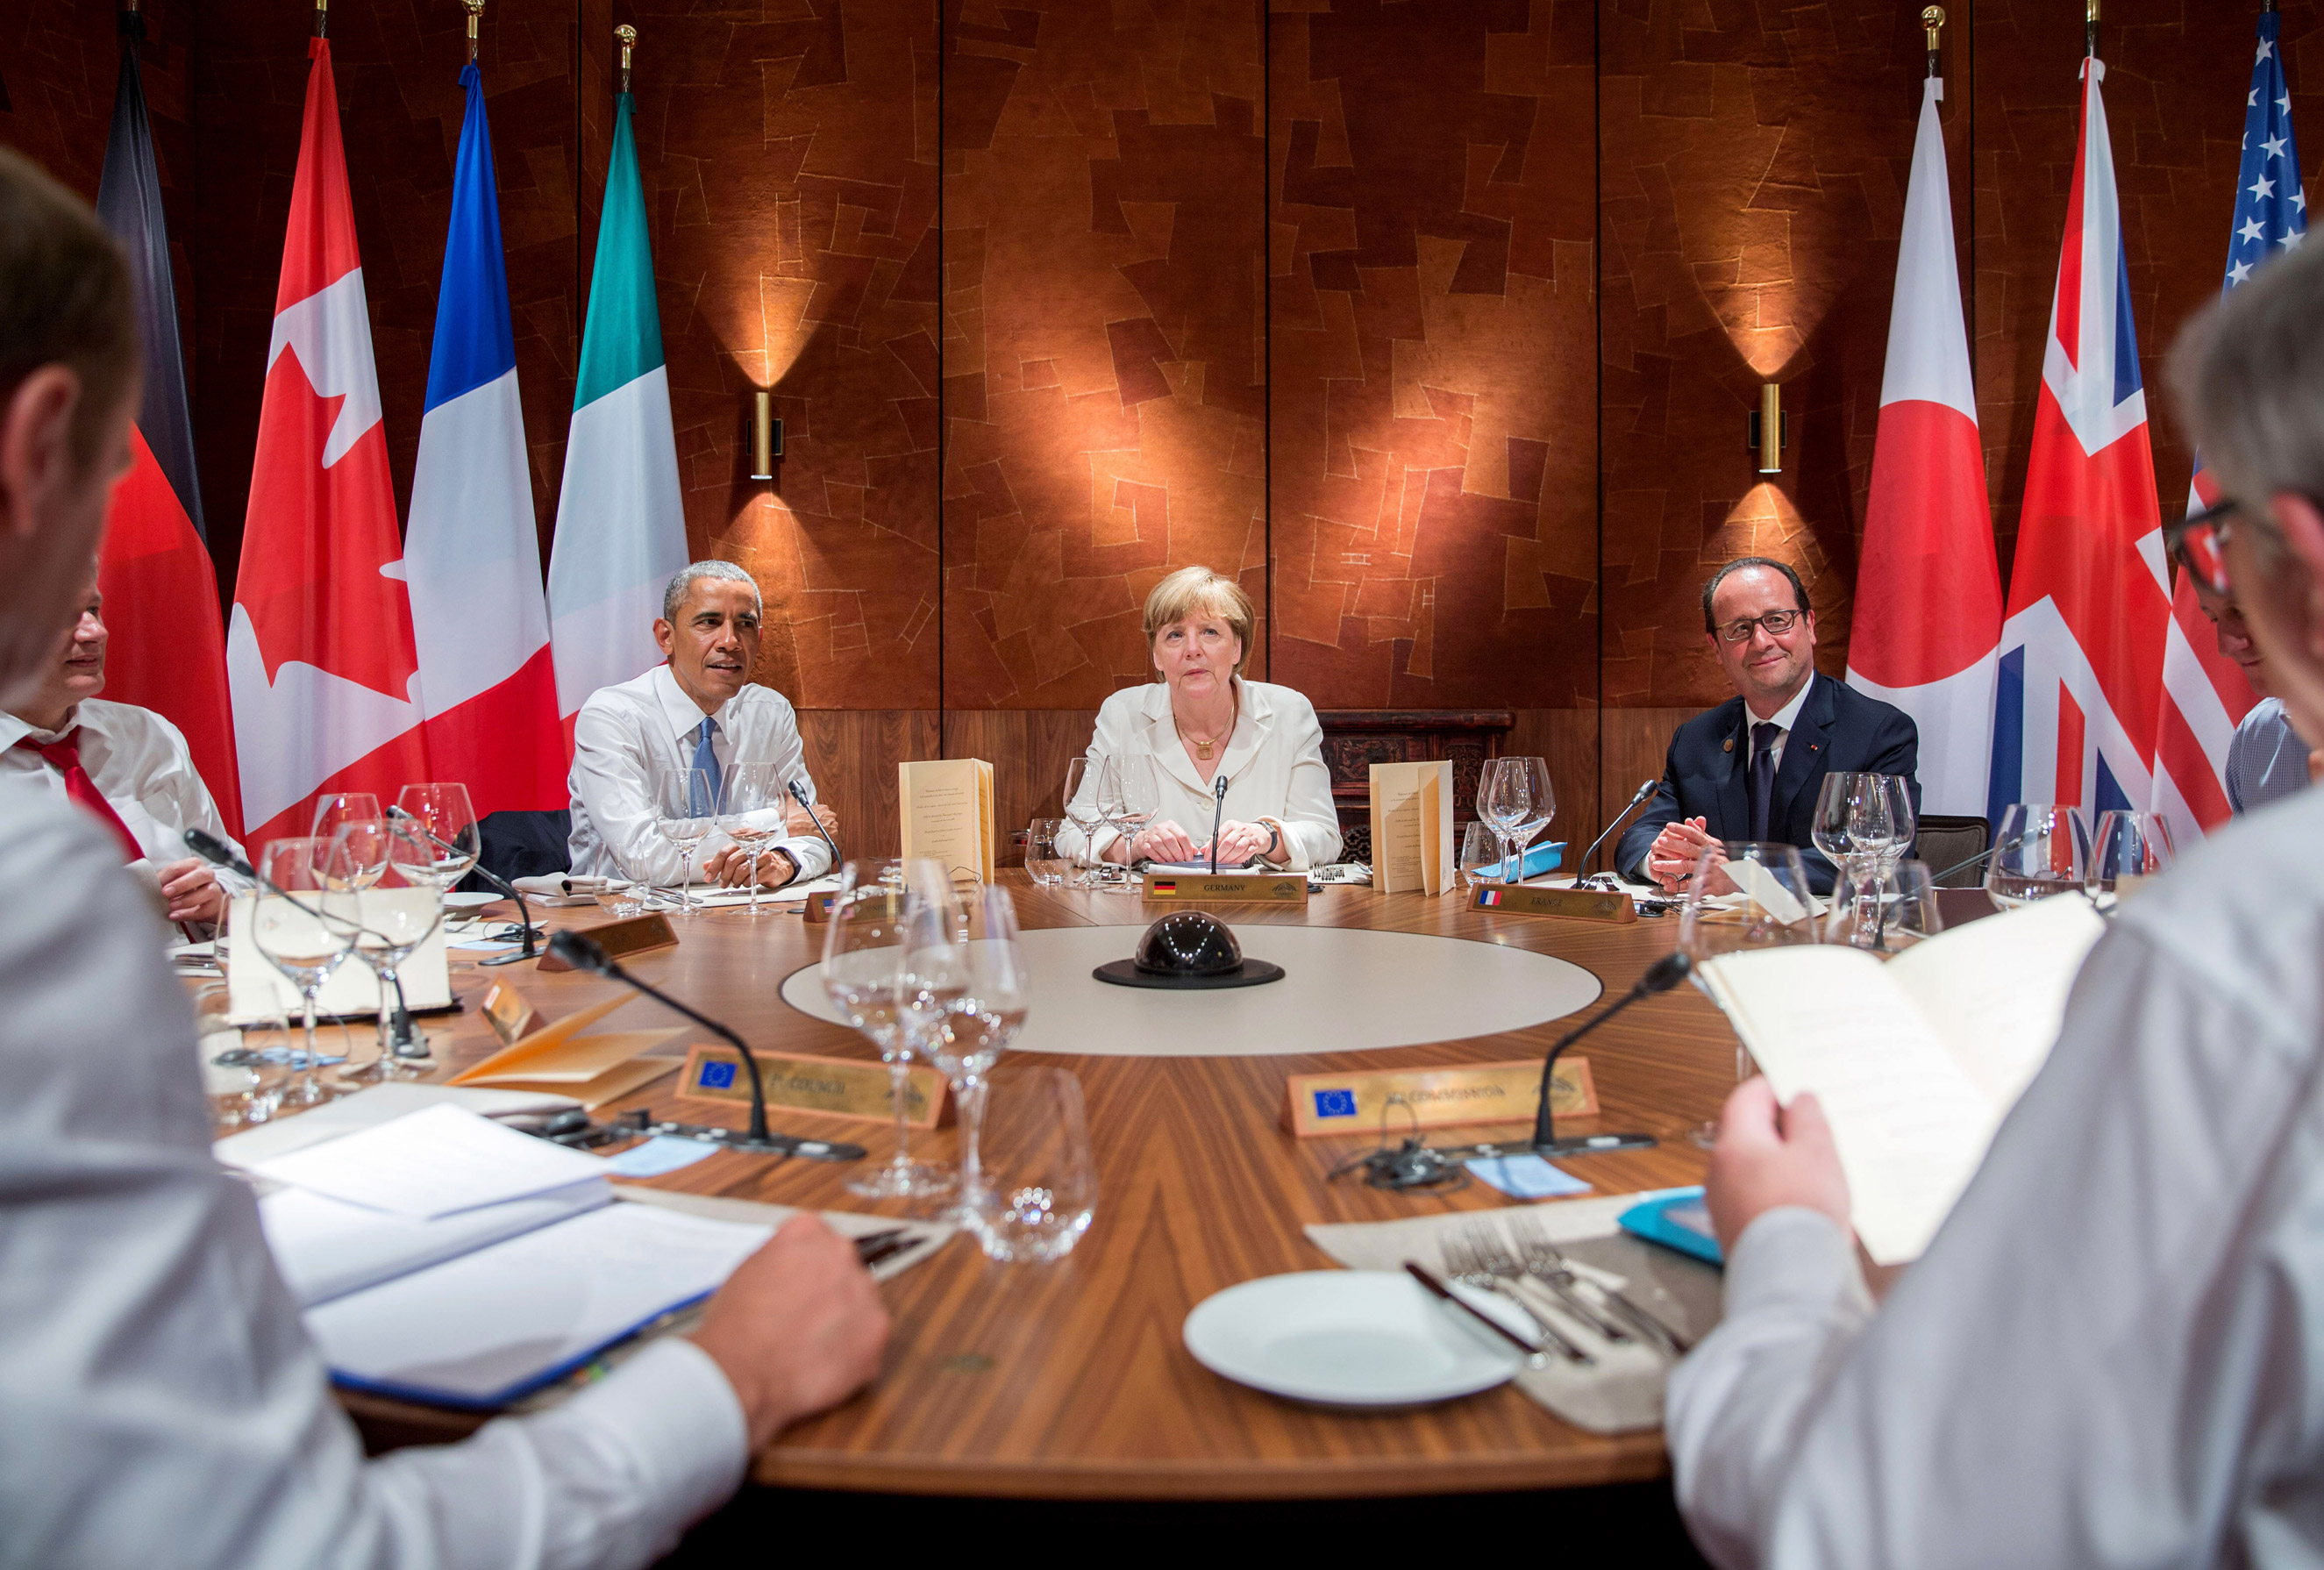 June: From left: U.S. President Barack Obama, Chancellor Angela Merkel and France's President Francois Hollande attend a working dinner at the G7 summit at the castle Elmau in Kruen, Germany on June 7, 2015. Leaders from the Group of Seven (G7) industrial nations met in the Bavarian Alps for a summit overshadowed by Greece's debt crisis and ongoing violence in Ukraine.